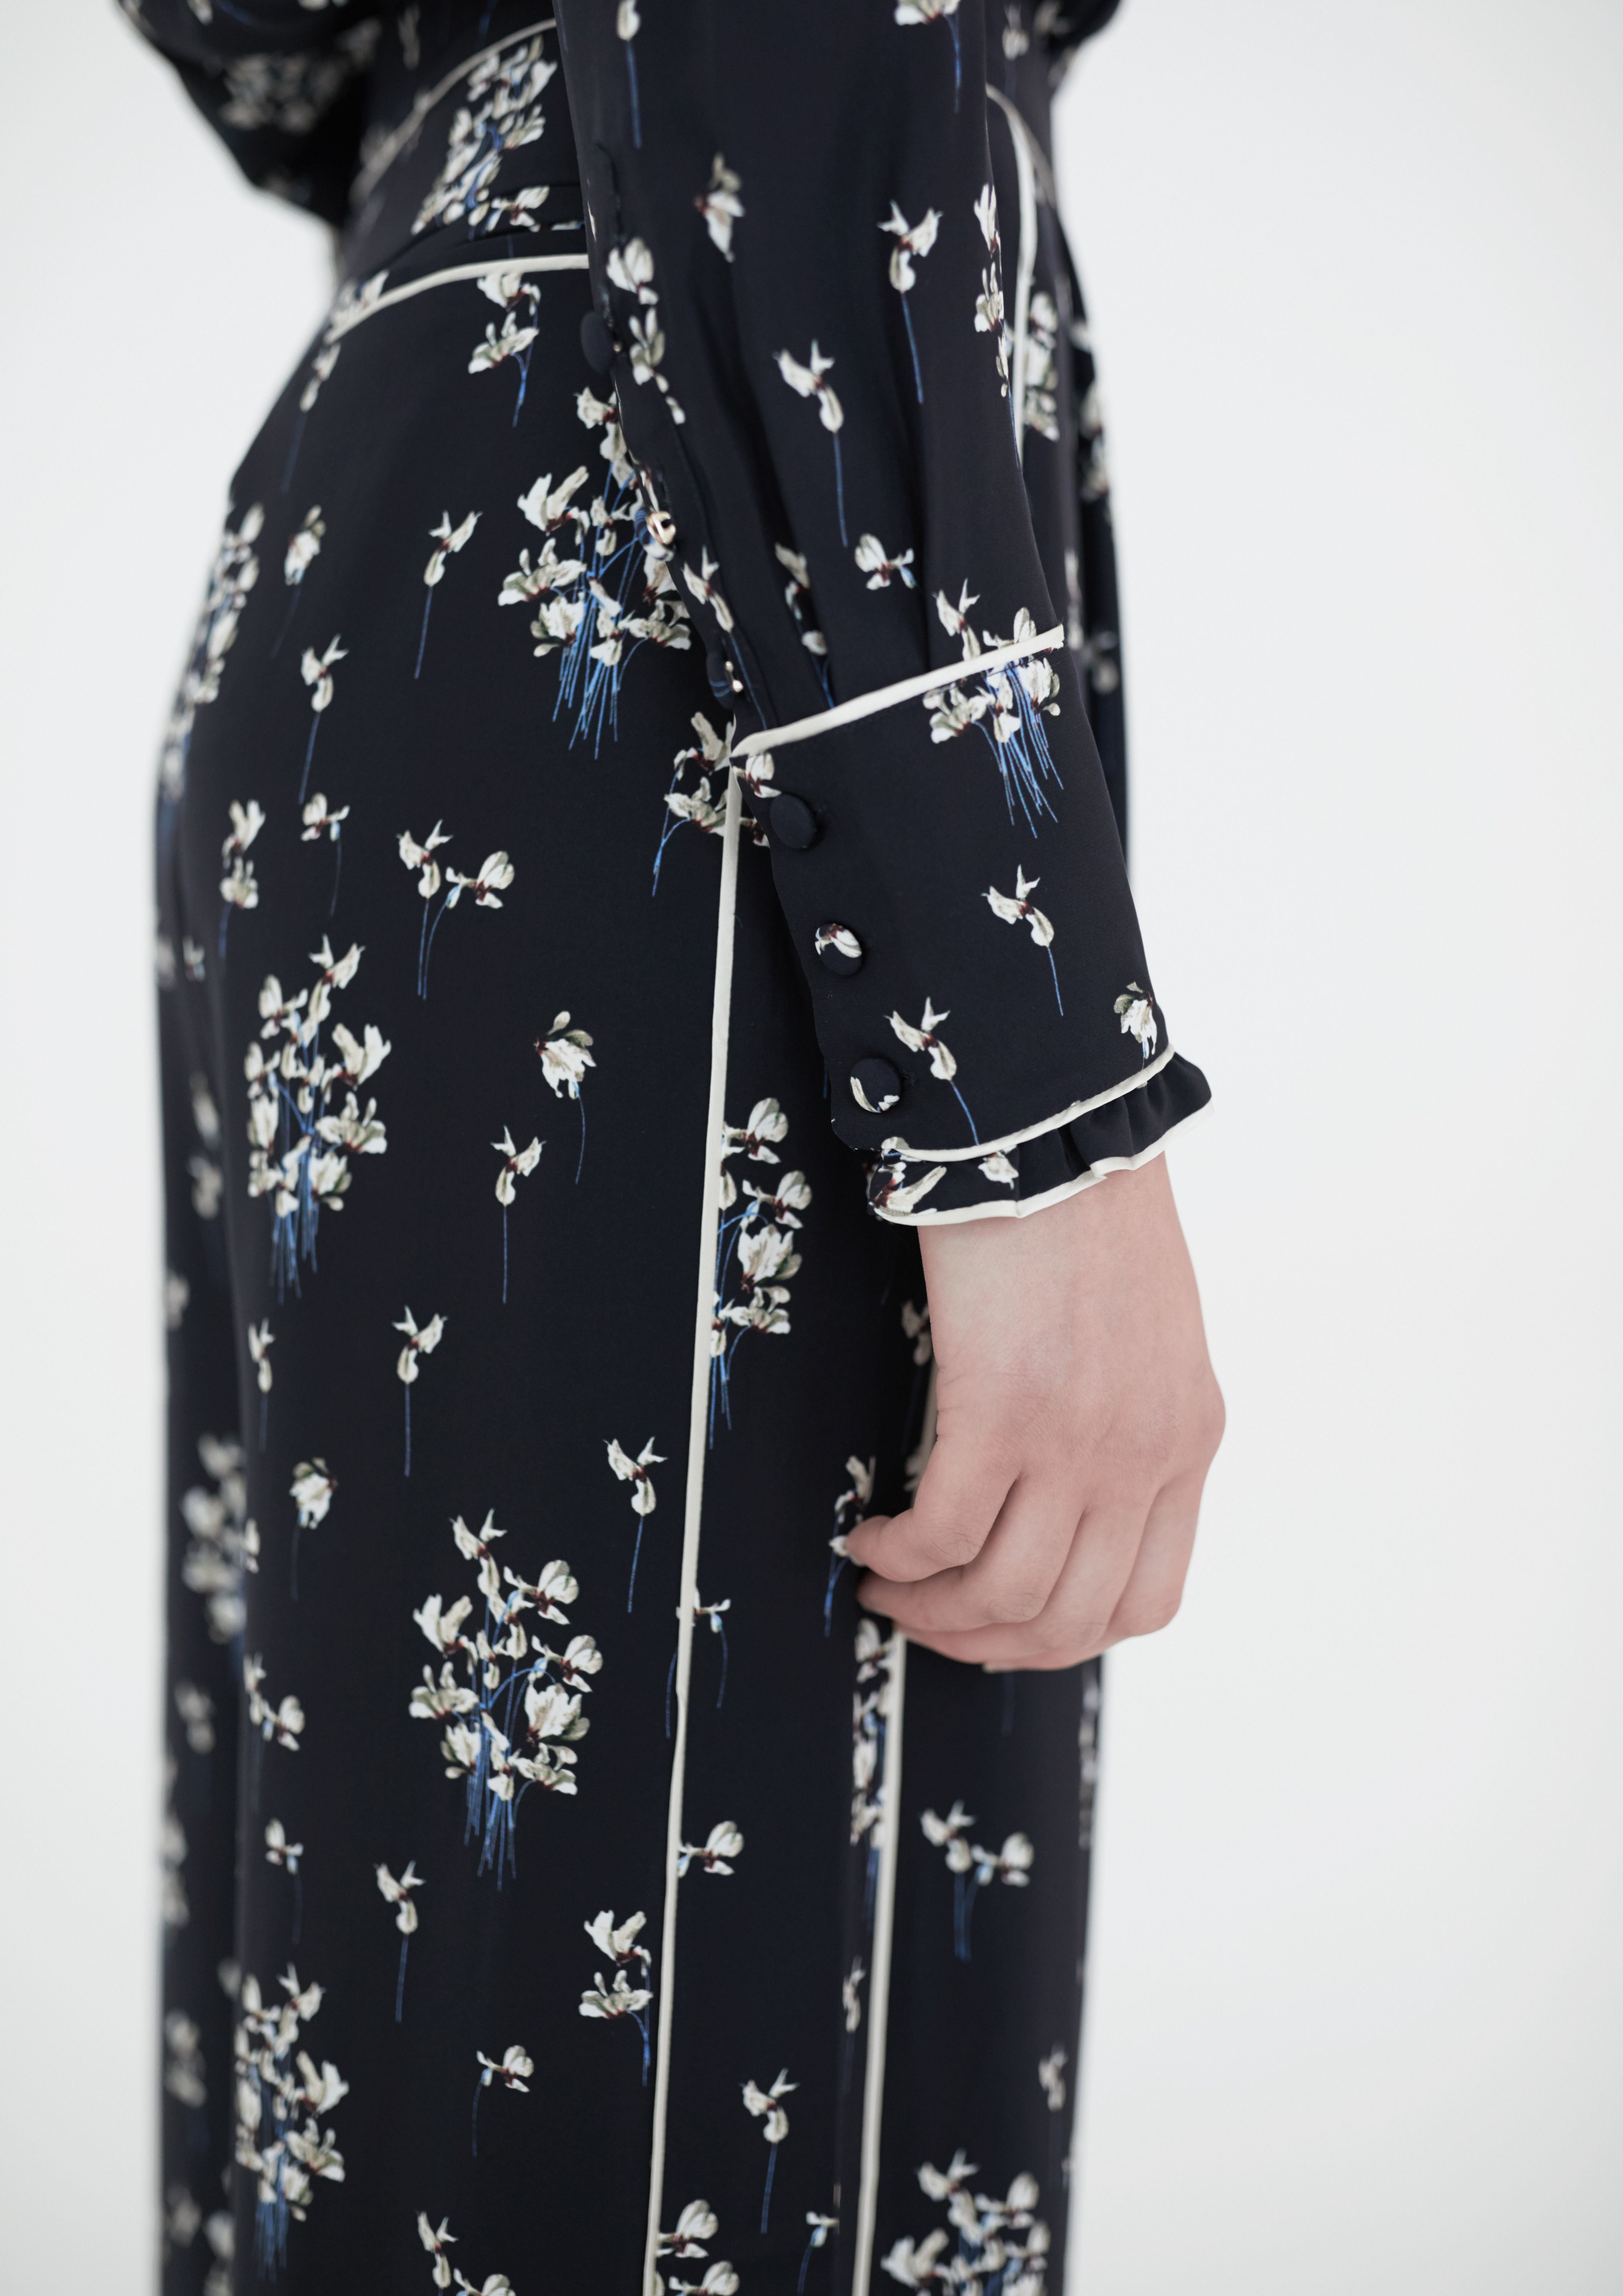 H&m Online In Usa The First Preview Of The Coming Erdem X H Andm Collection For